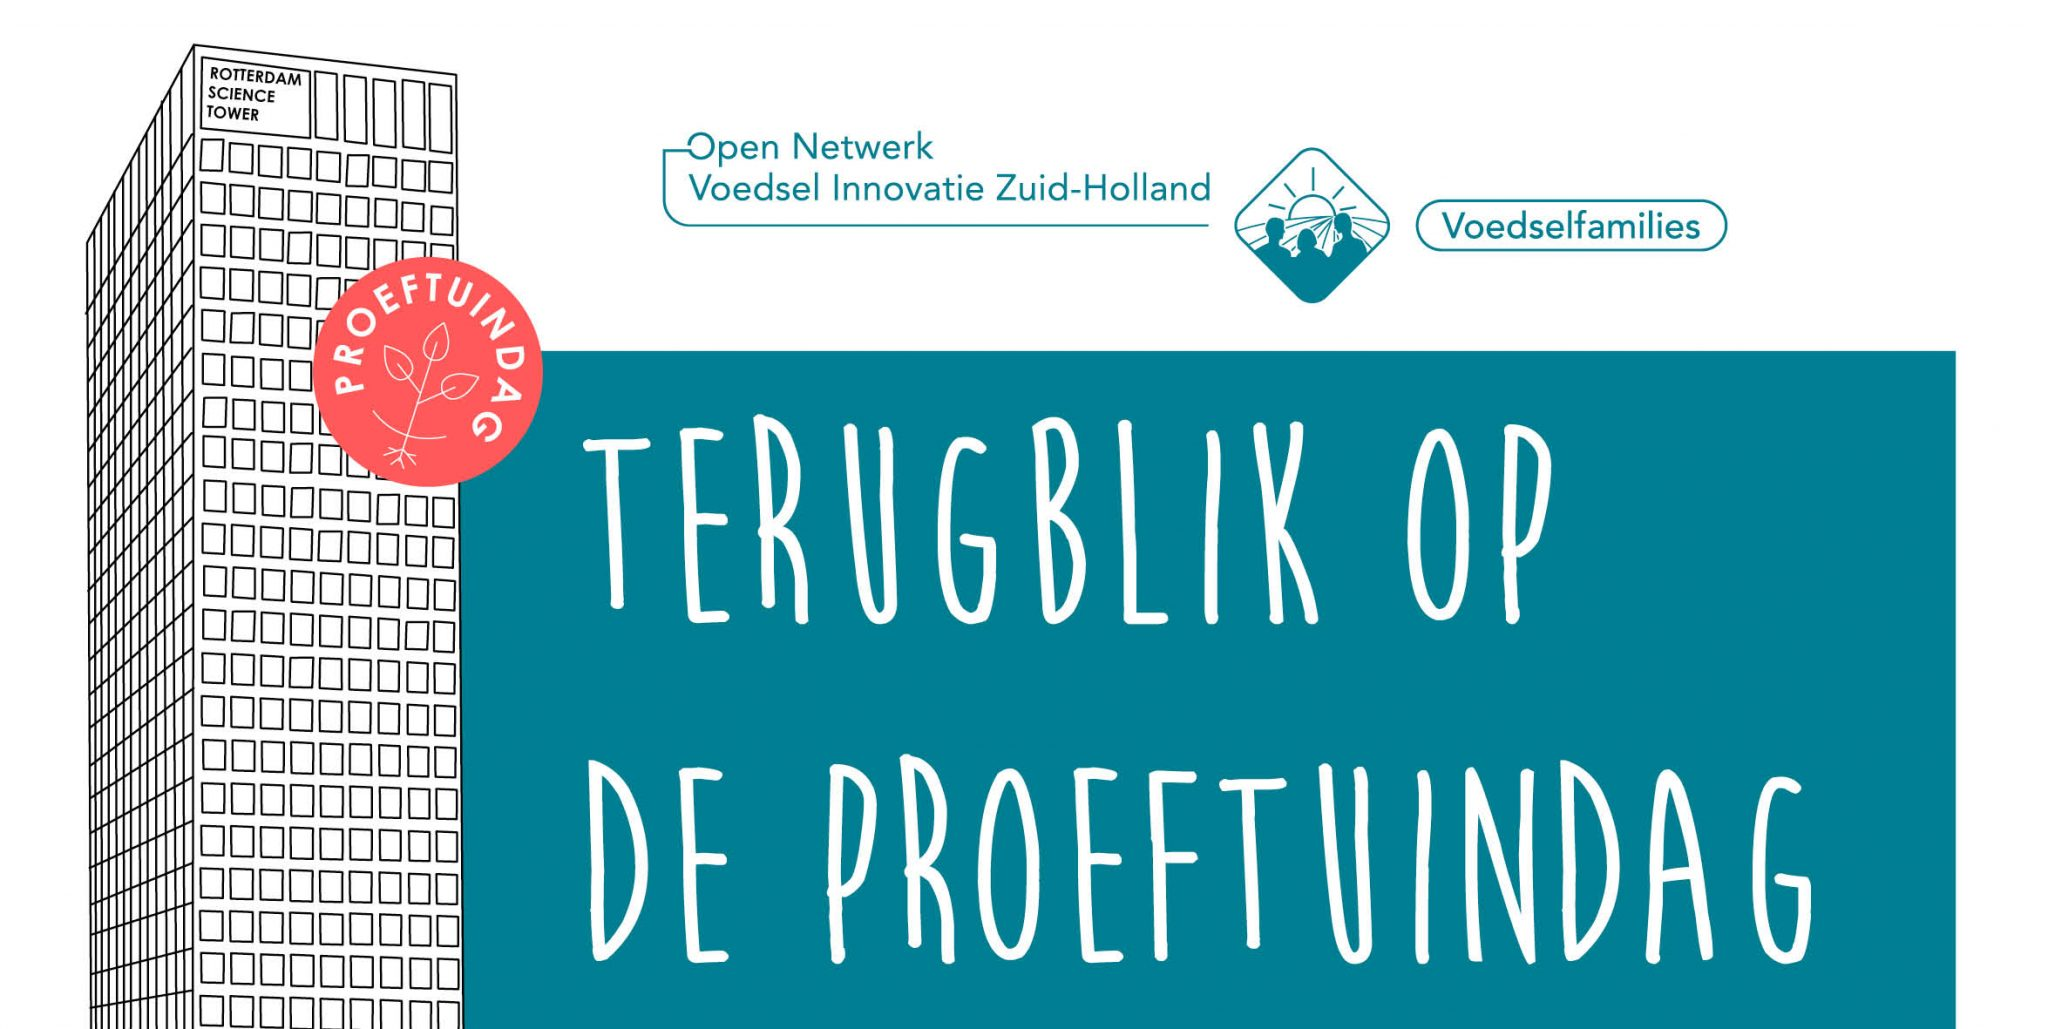 Voedselfamilies Proeftuinendag. ECE Campus Rotterdam (Rotterdam Science Tower (11e verdieping), Marconistraat 16)